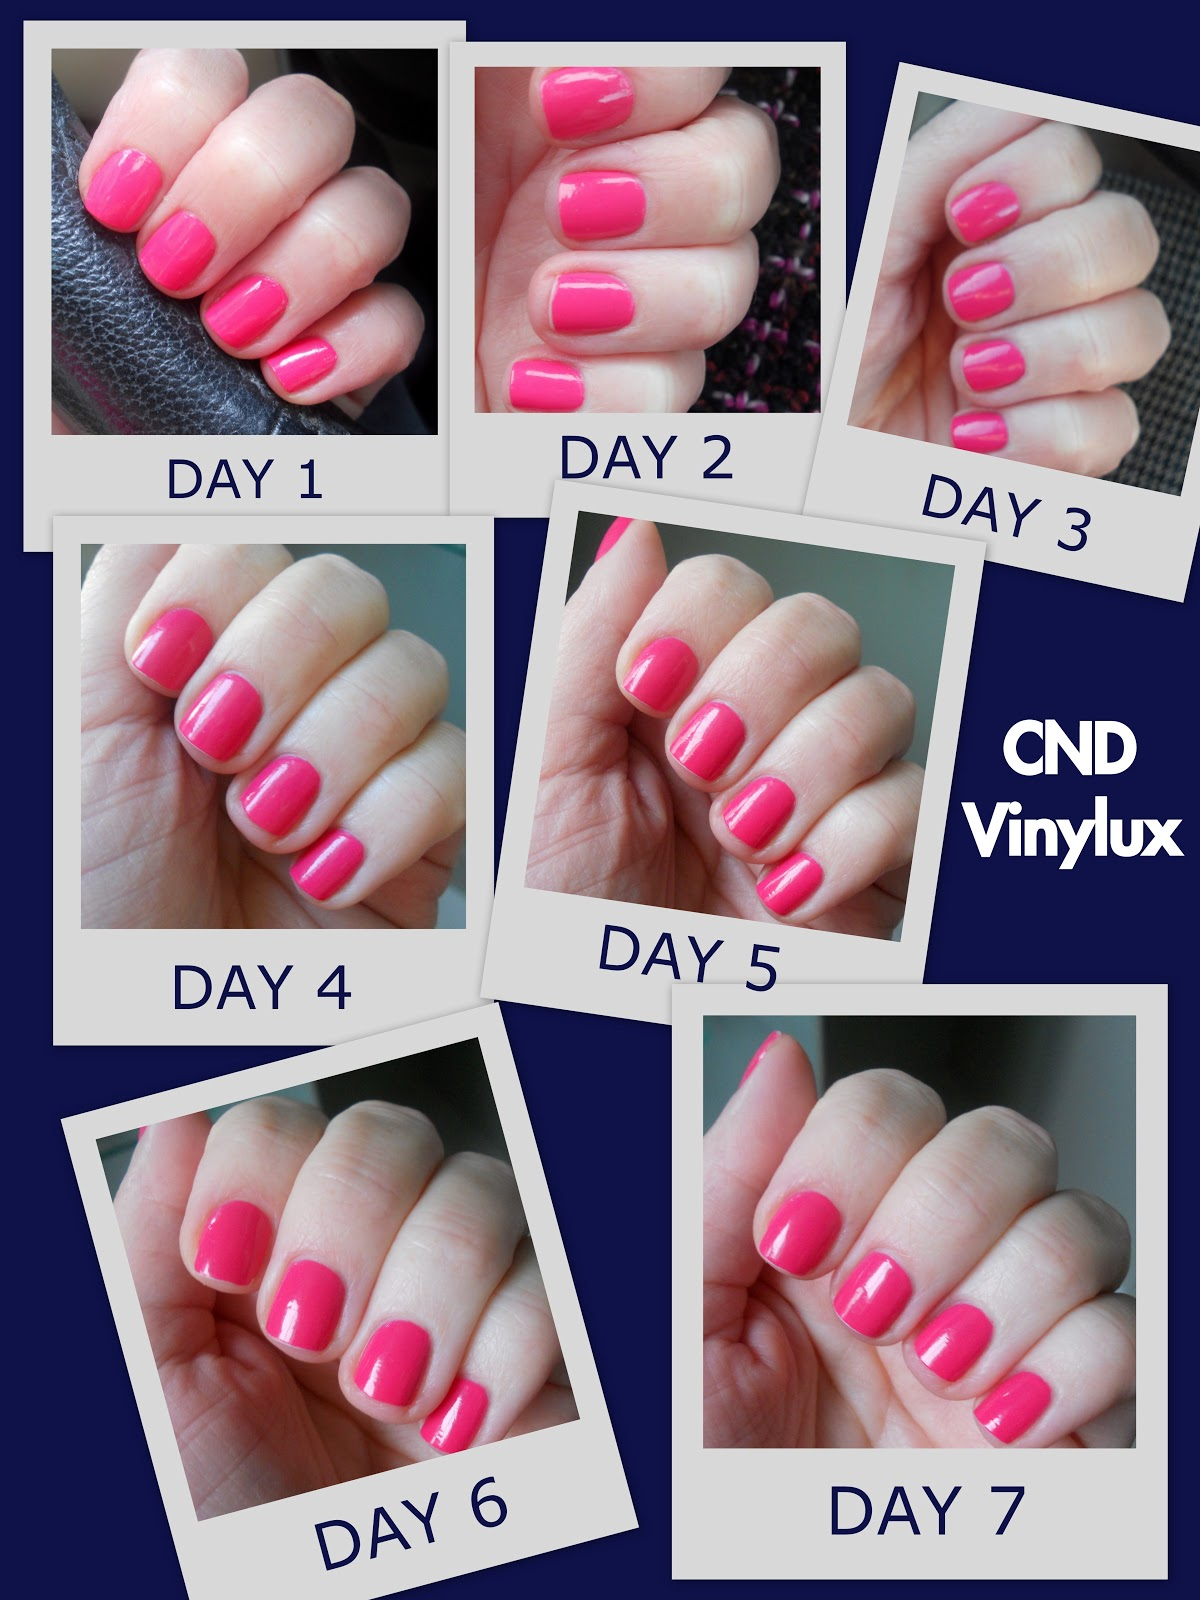 CND Vinylux 7 Day Review